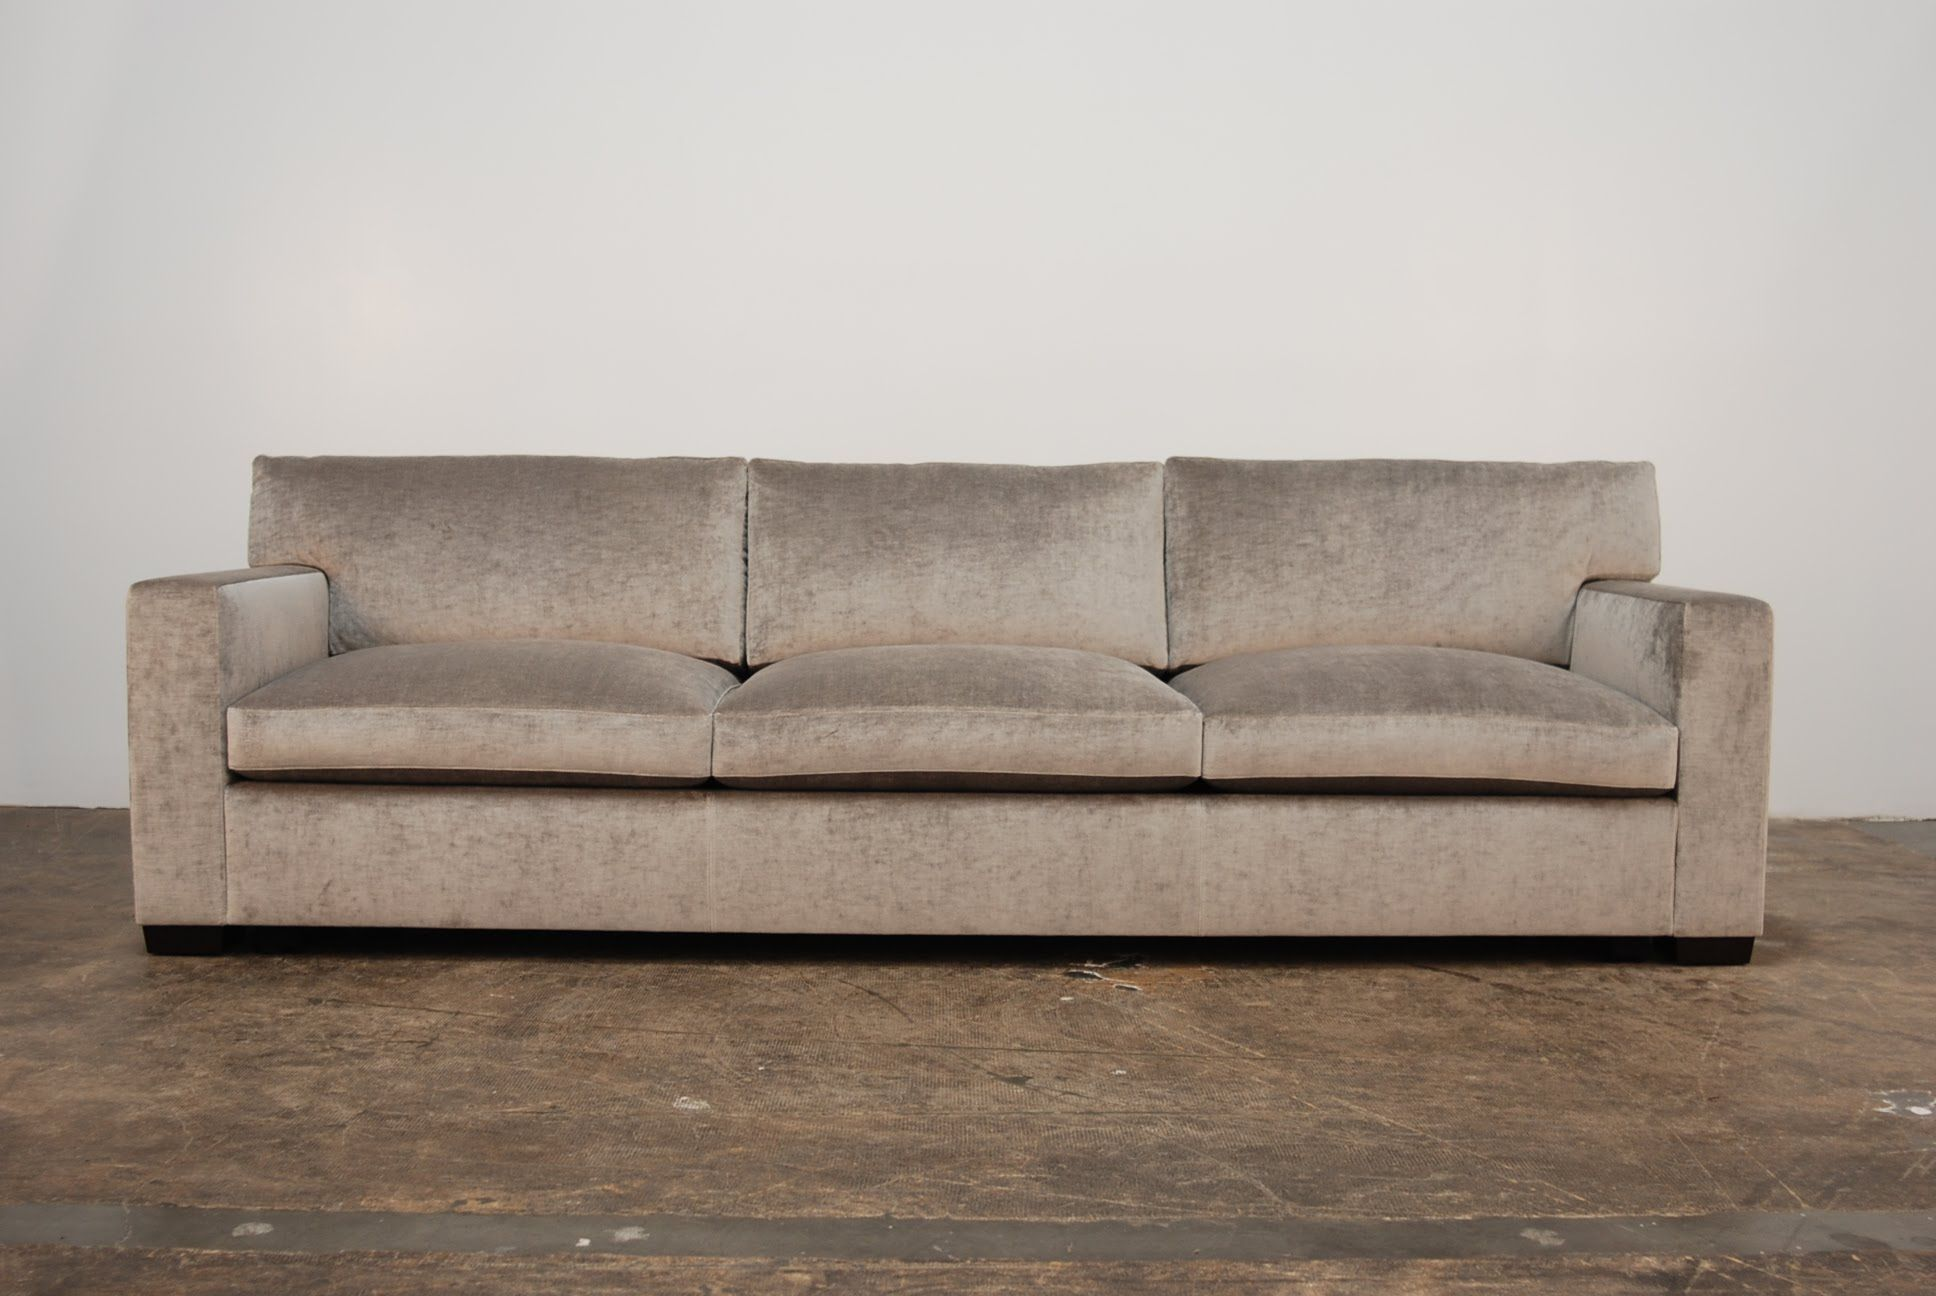 Large JMF sofa